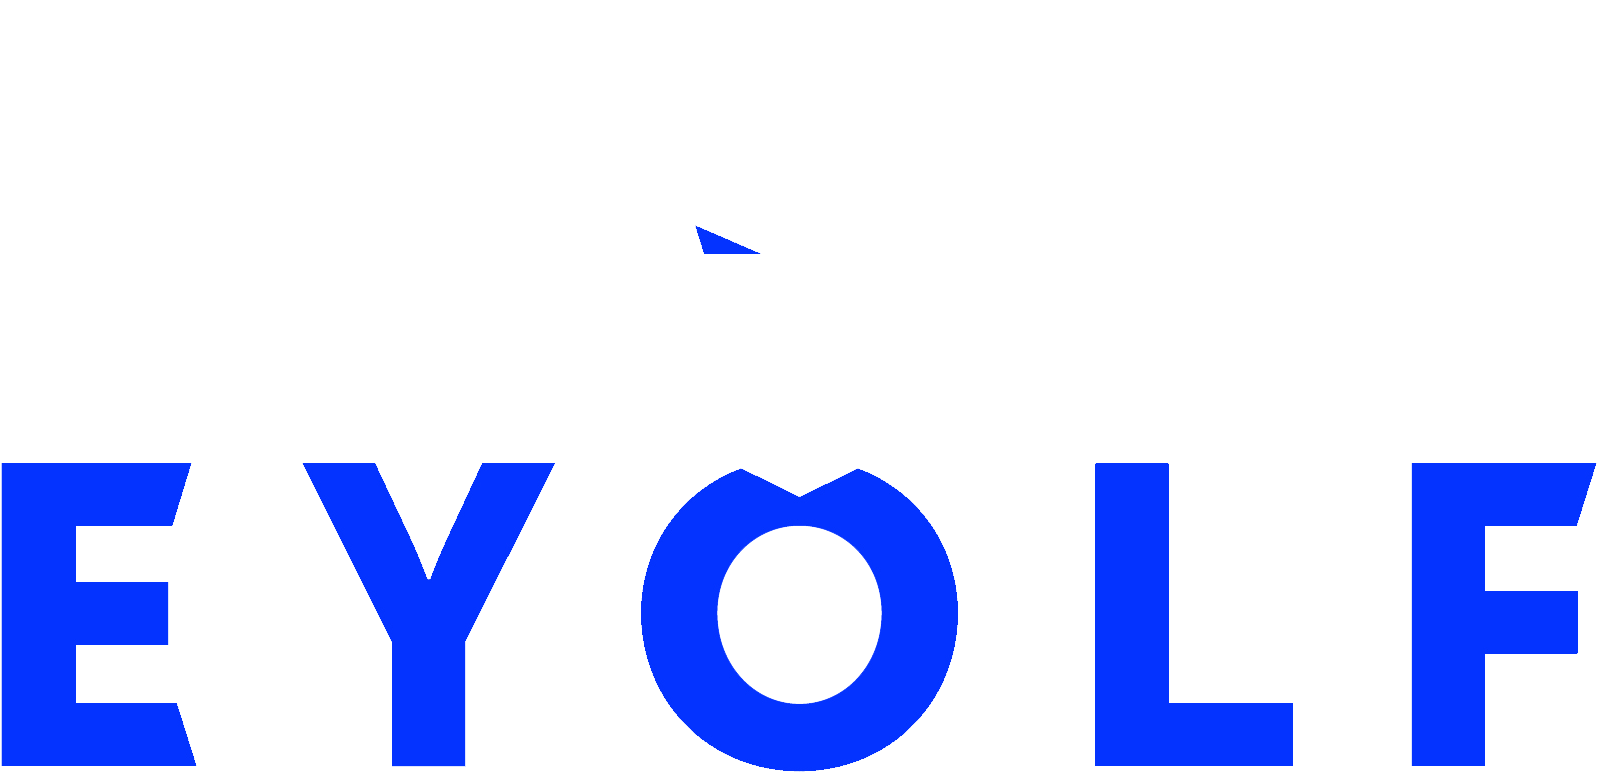 EYOLF logo without tagline